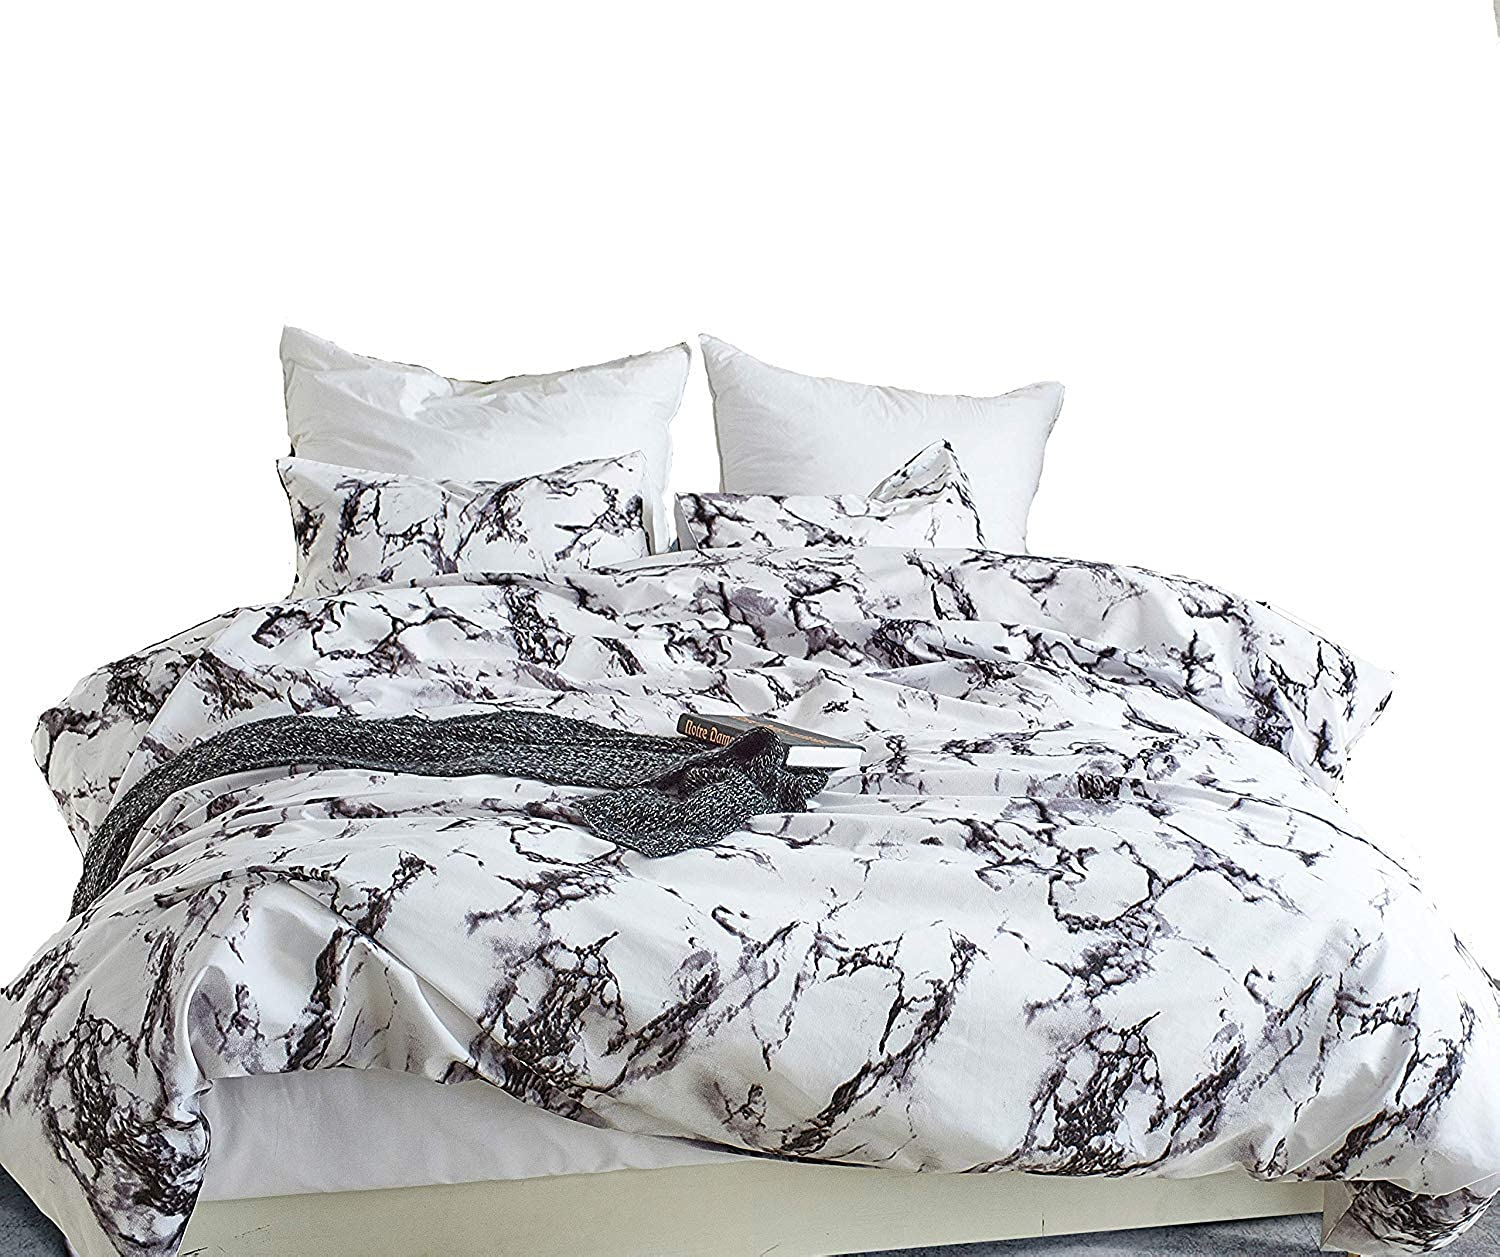 DuShow Floral Duvet Cover Set Queen Boho Bedding Sets Microfiber 3 Pieces Comforter Cover Set 1 Duvet Cover and 1 Pillowcase with Zipper Closure Marble